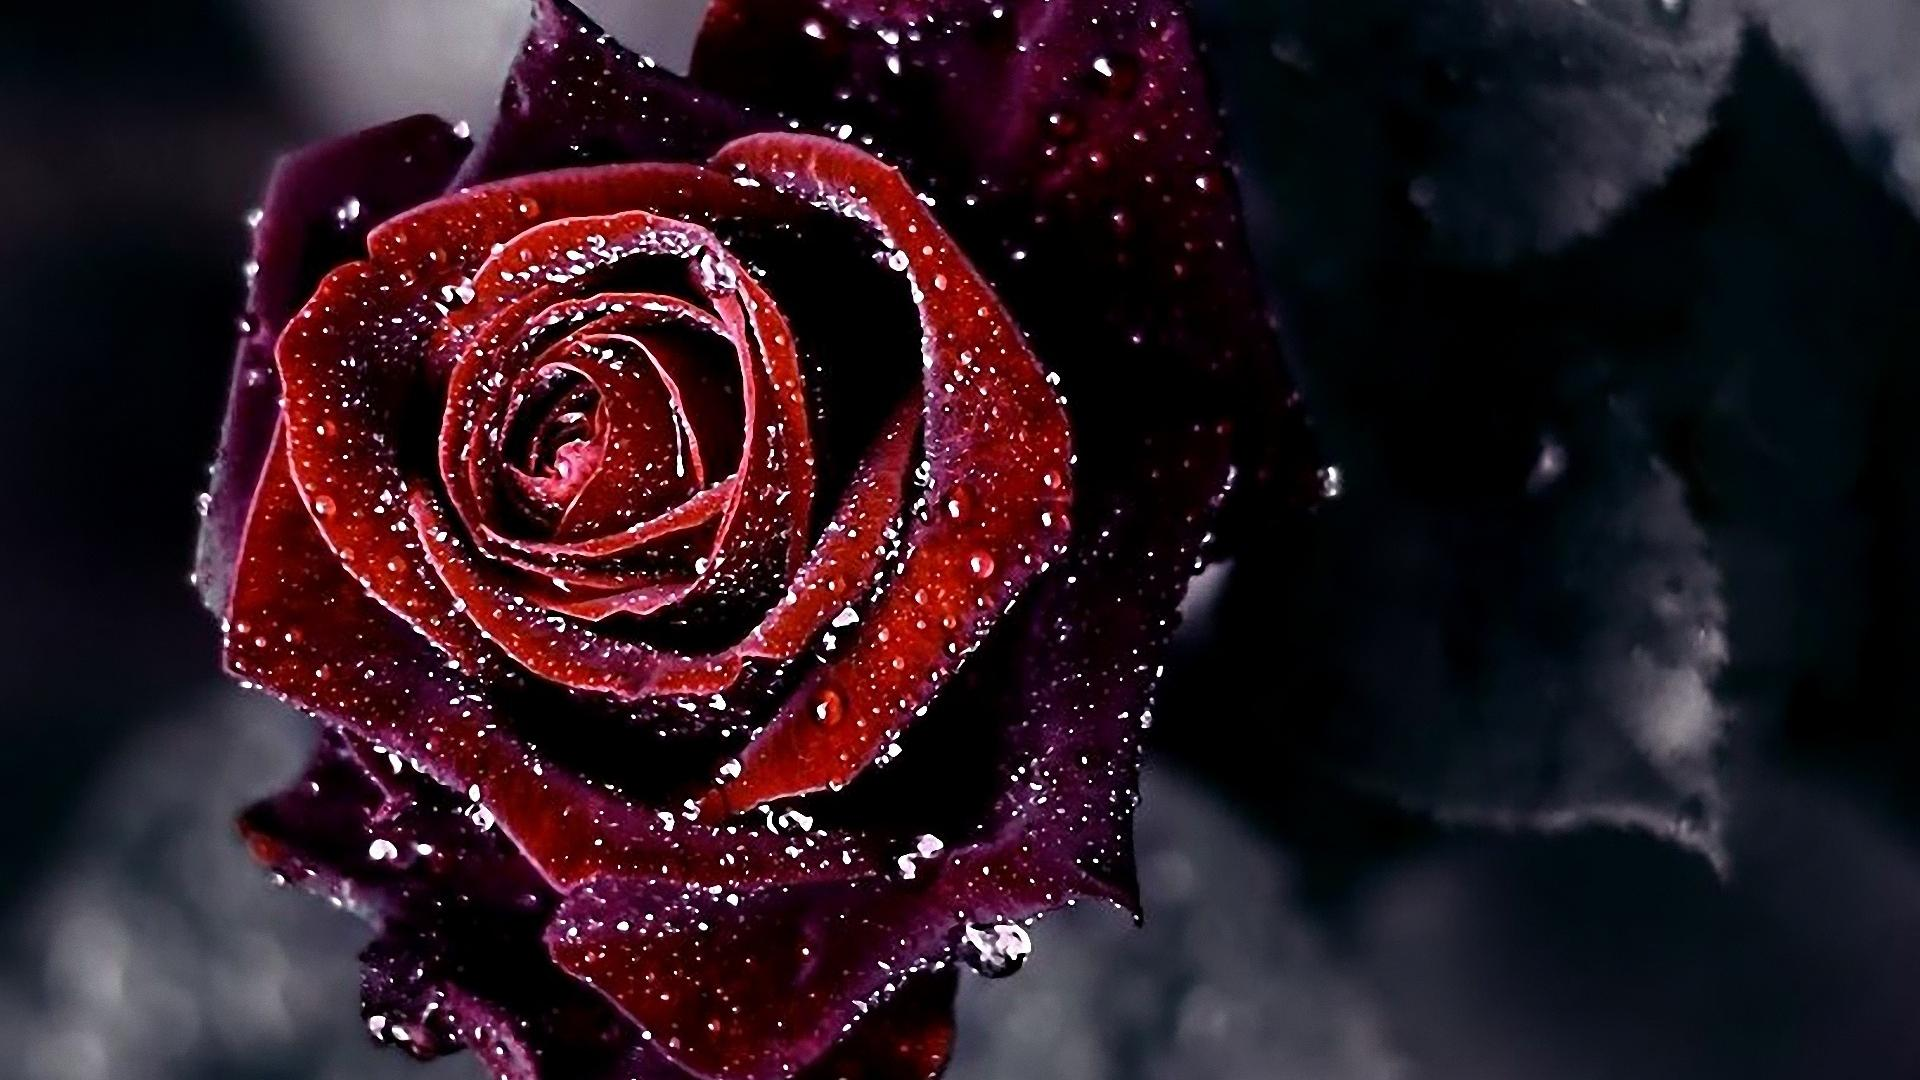 Red Rose Flower Background HD Wallpaper of Flower ...